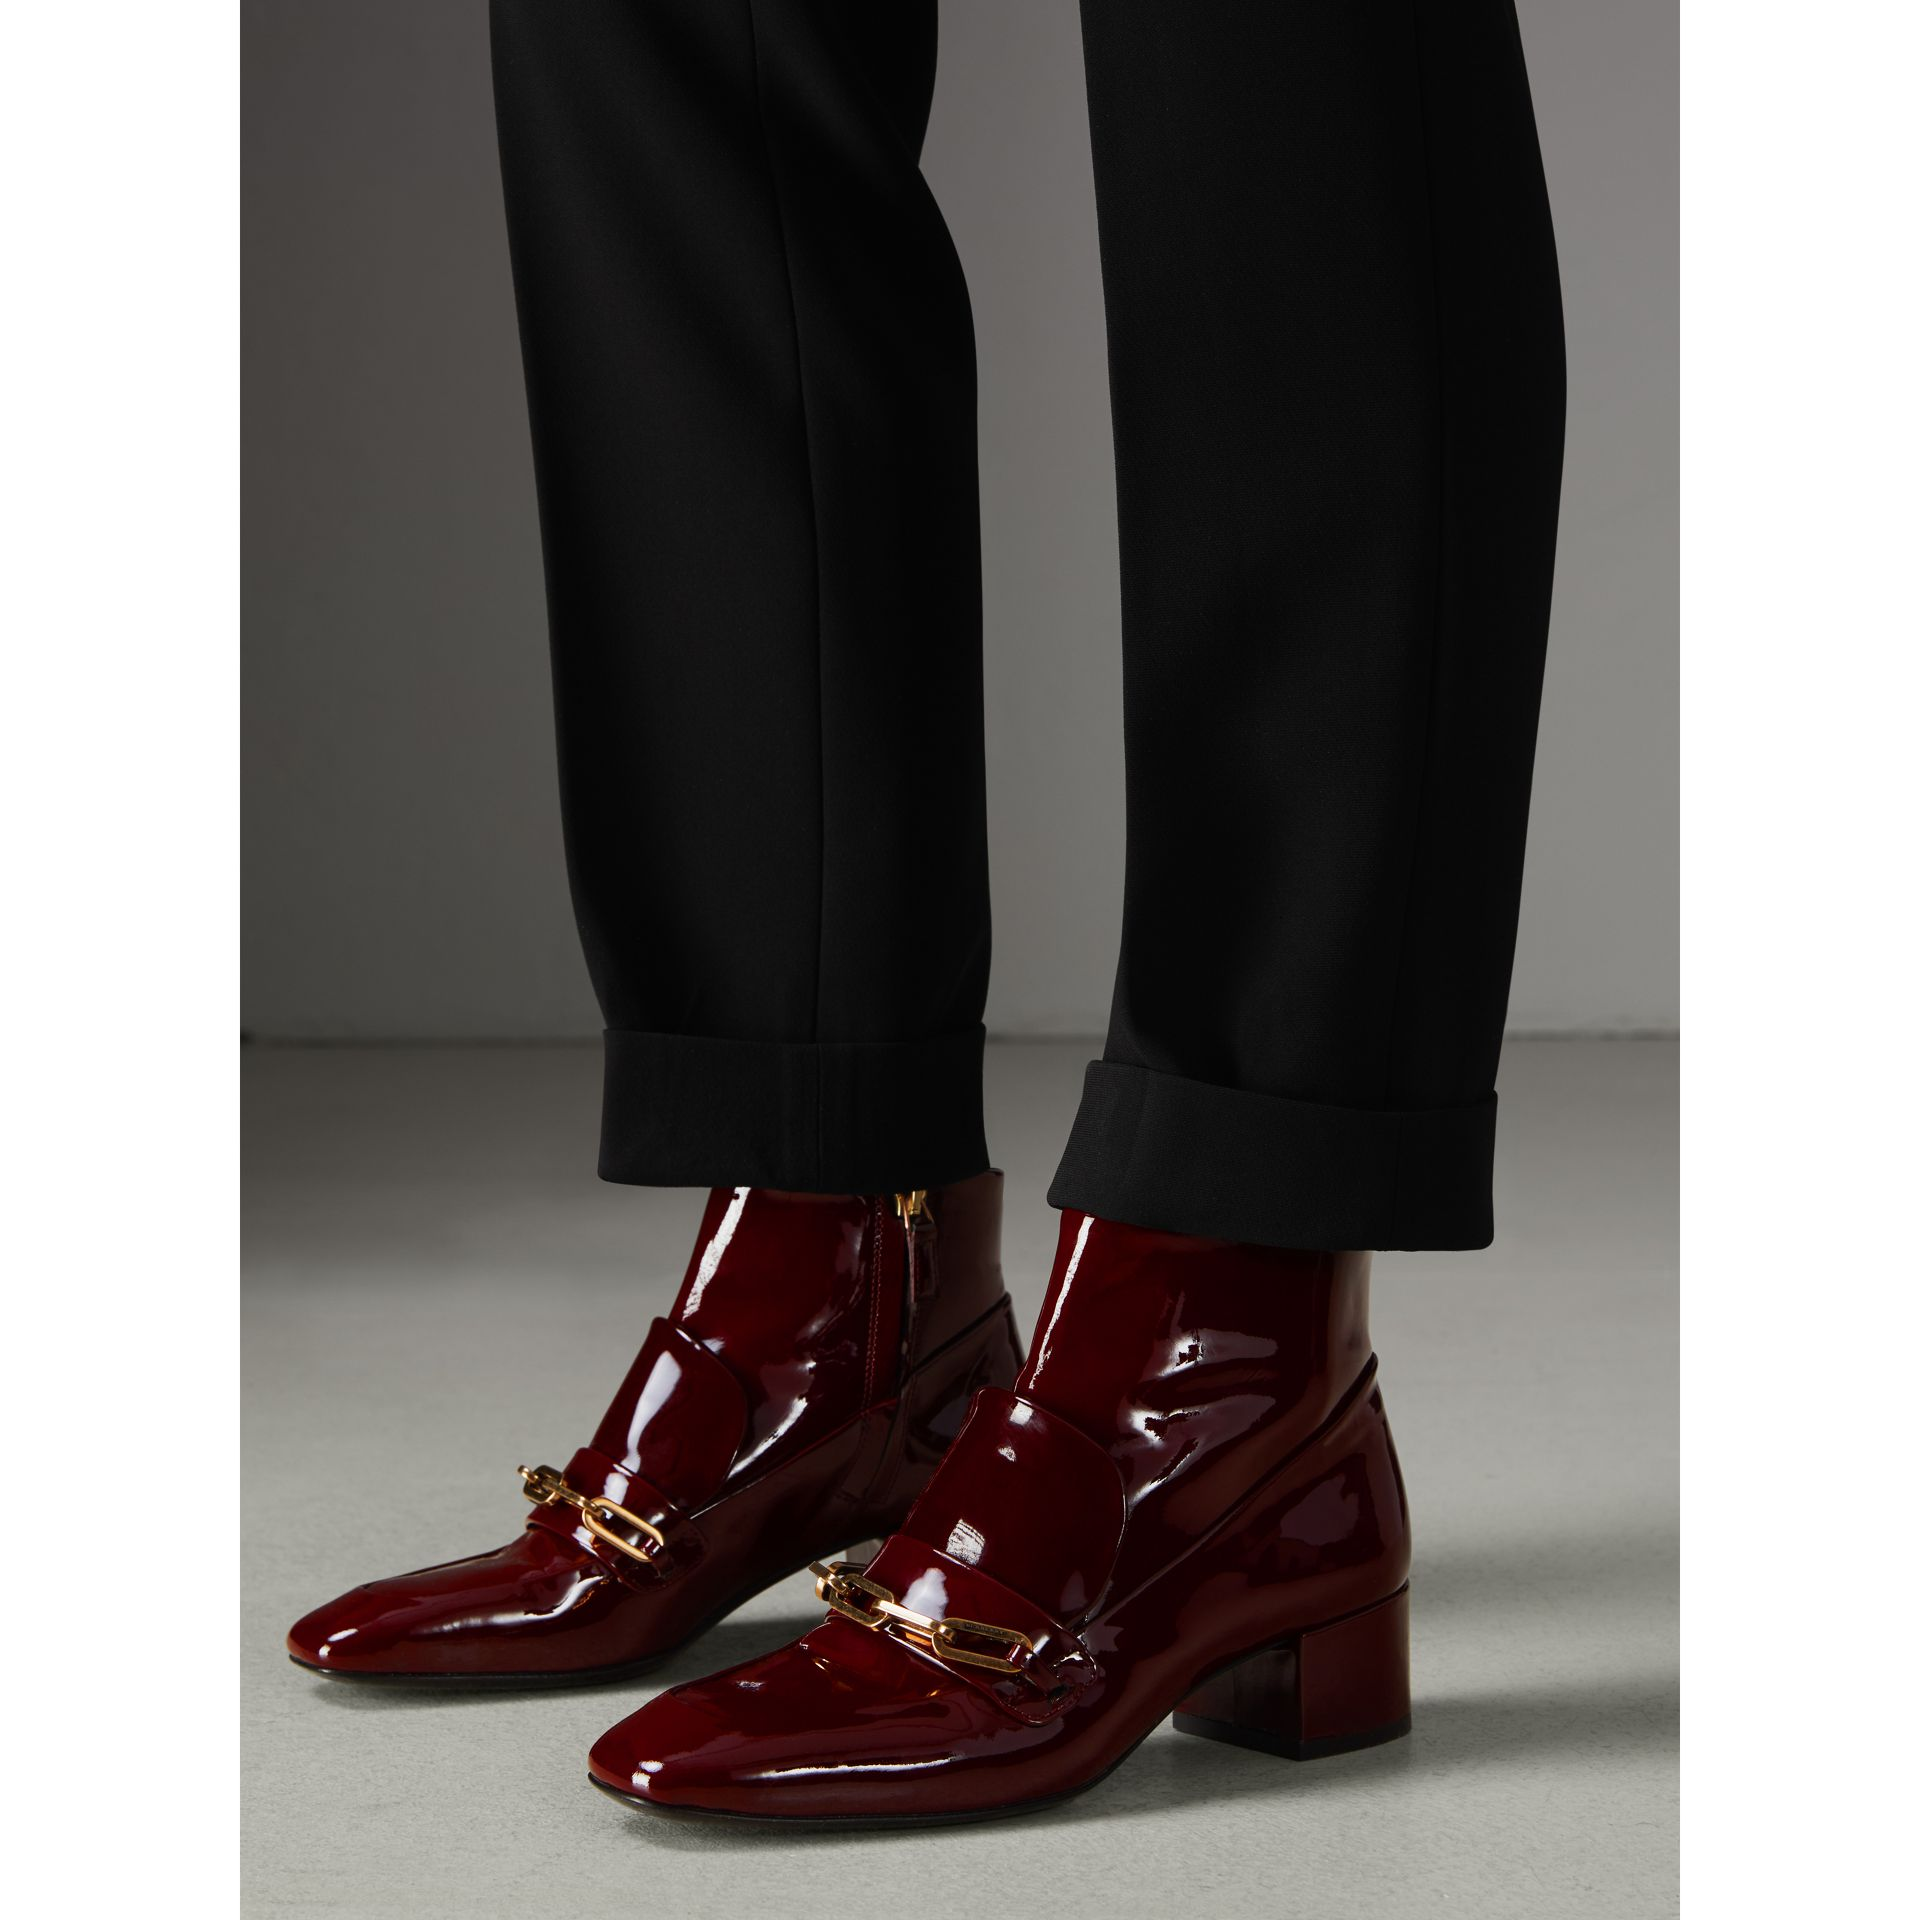 Link Detail Patent Leather Ankle Boots in Burgundy Red - Women | Burberry United Kingdom - gallery image 2